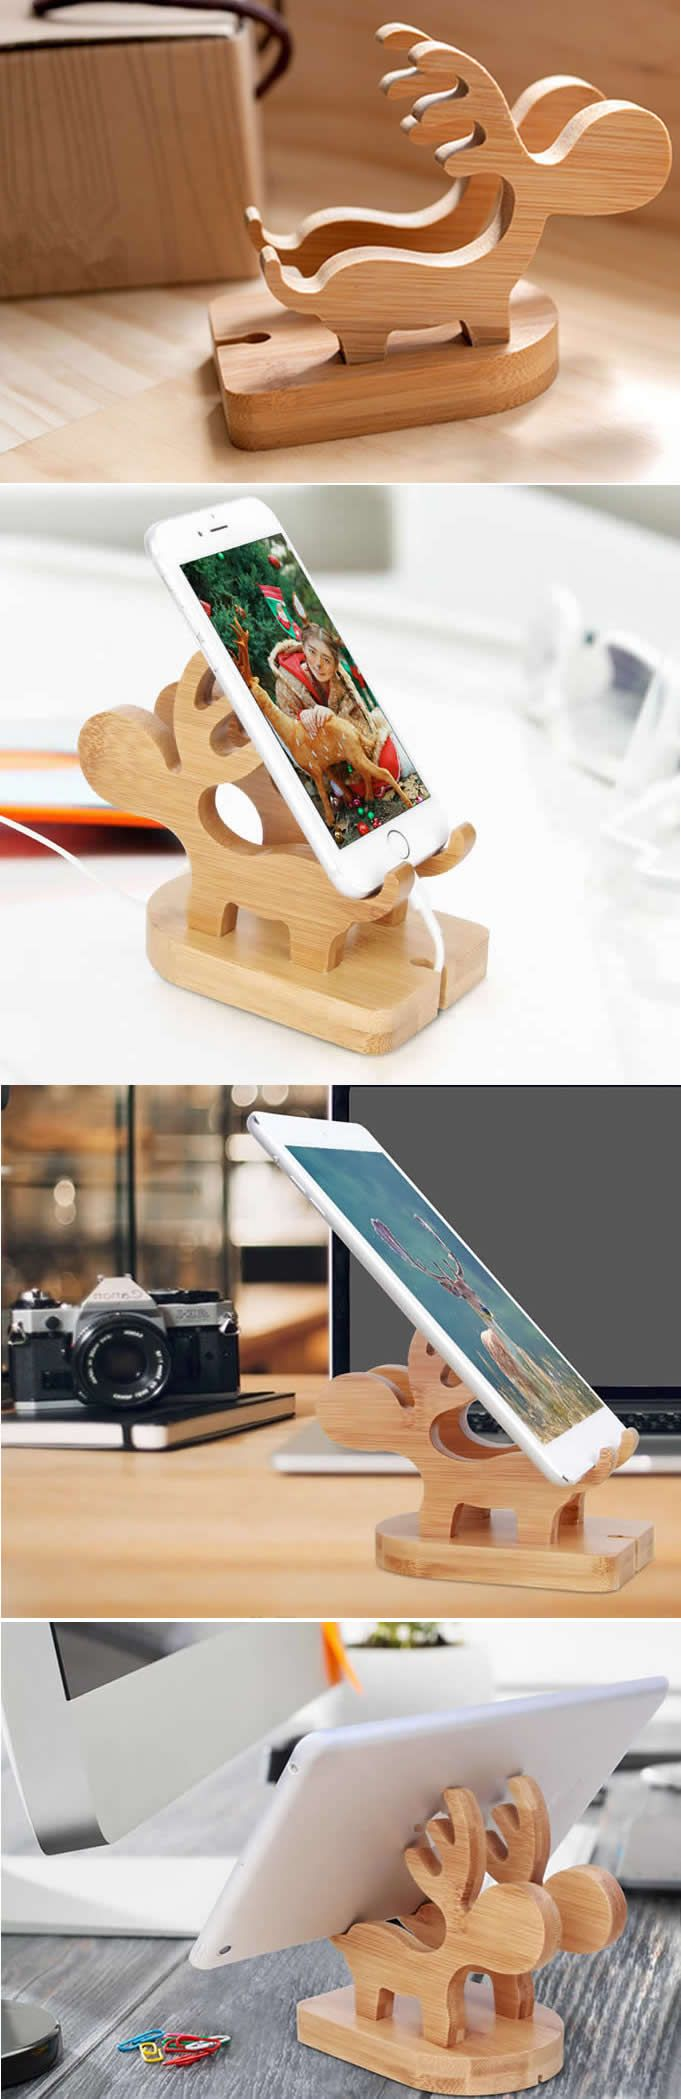 Wooden Muntjacs Cell Phone Stand Charging Dock Holder